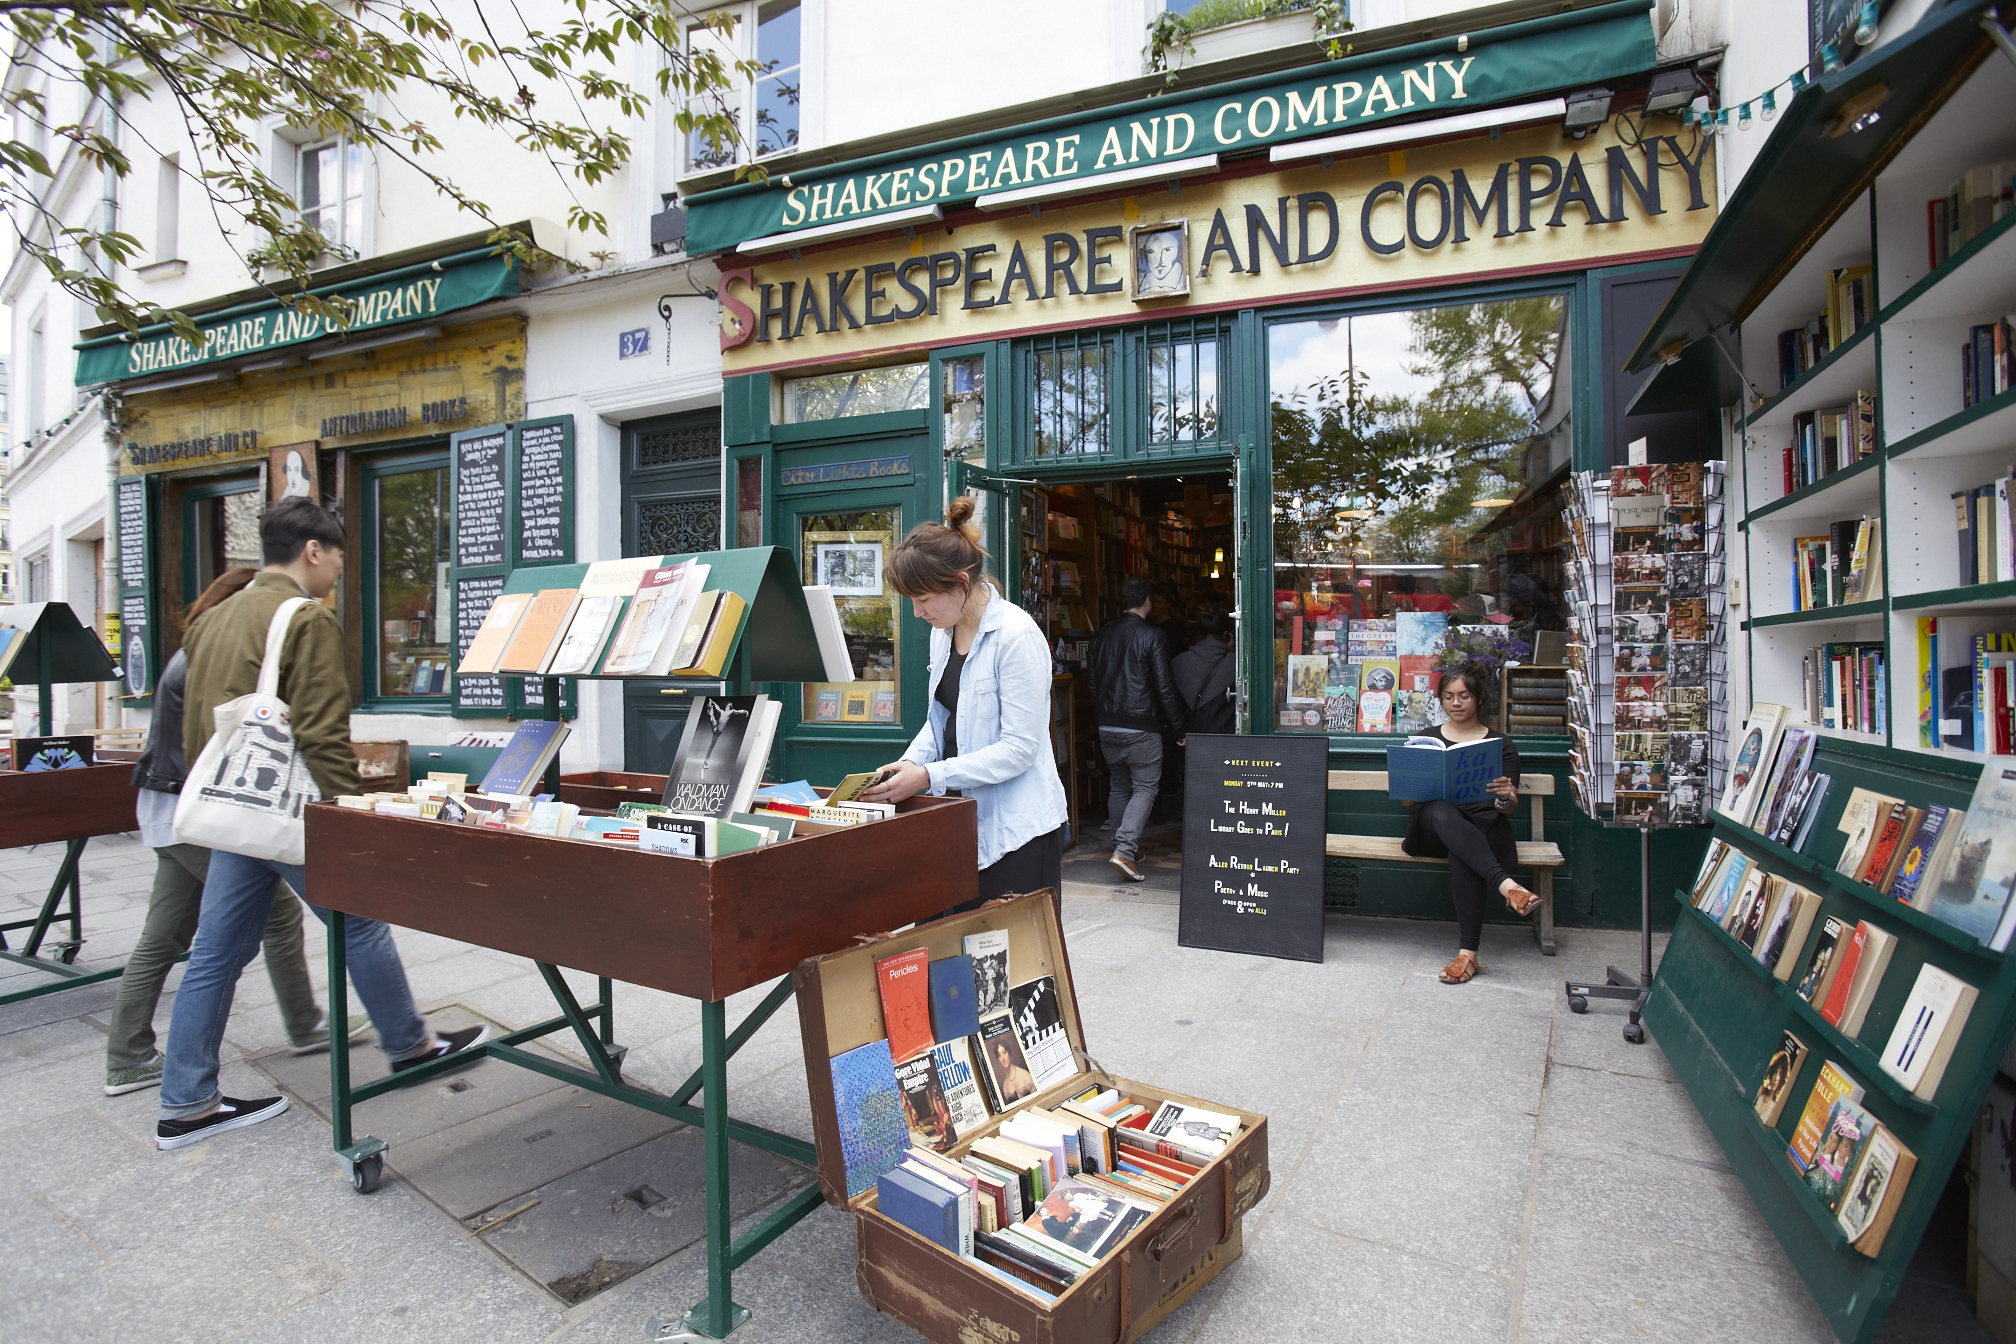 Outside Shakespeare and Company bookshop, Paris